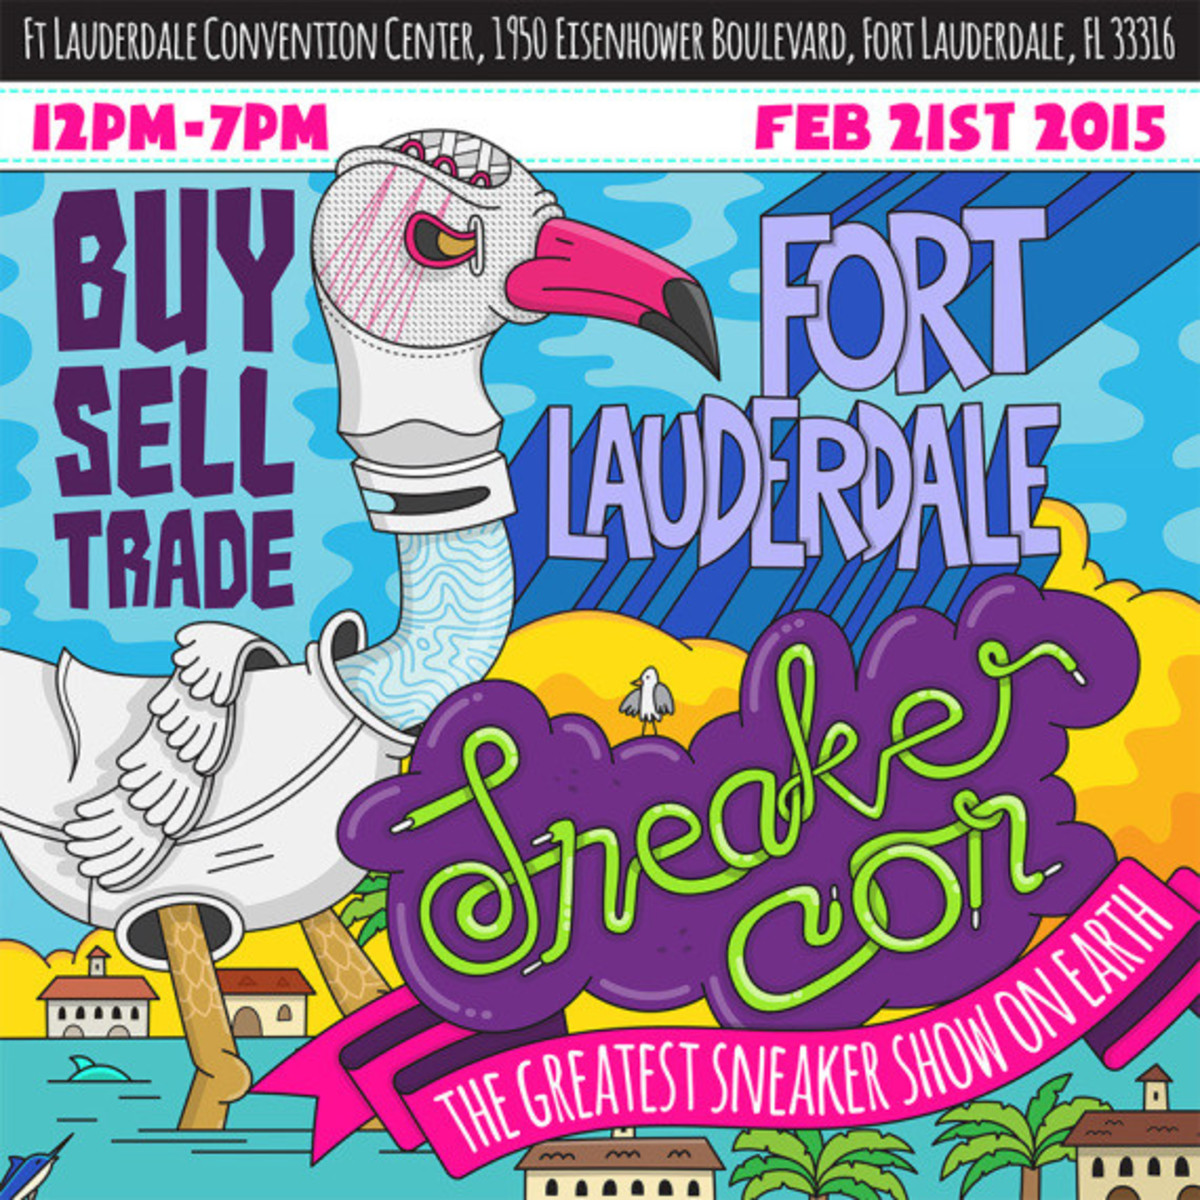 sneaker-con-fort-lauderdale-february-2015-reminder-04